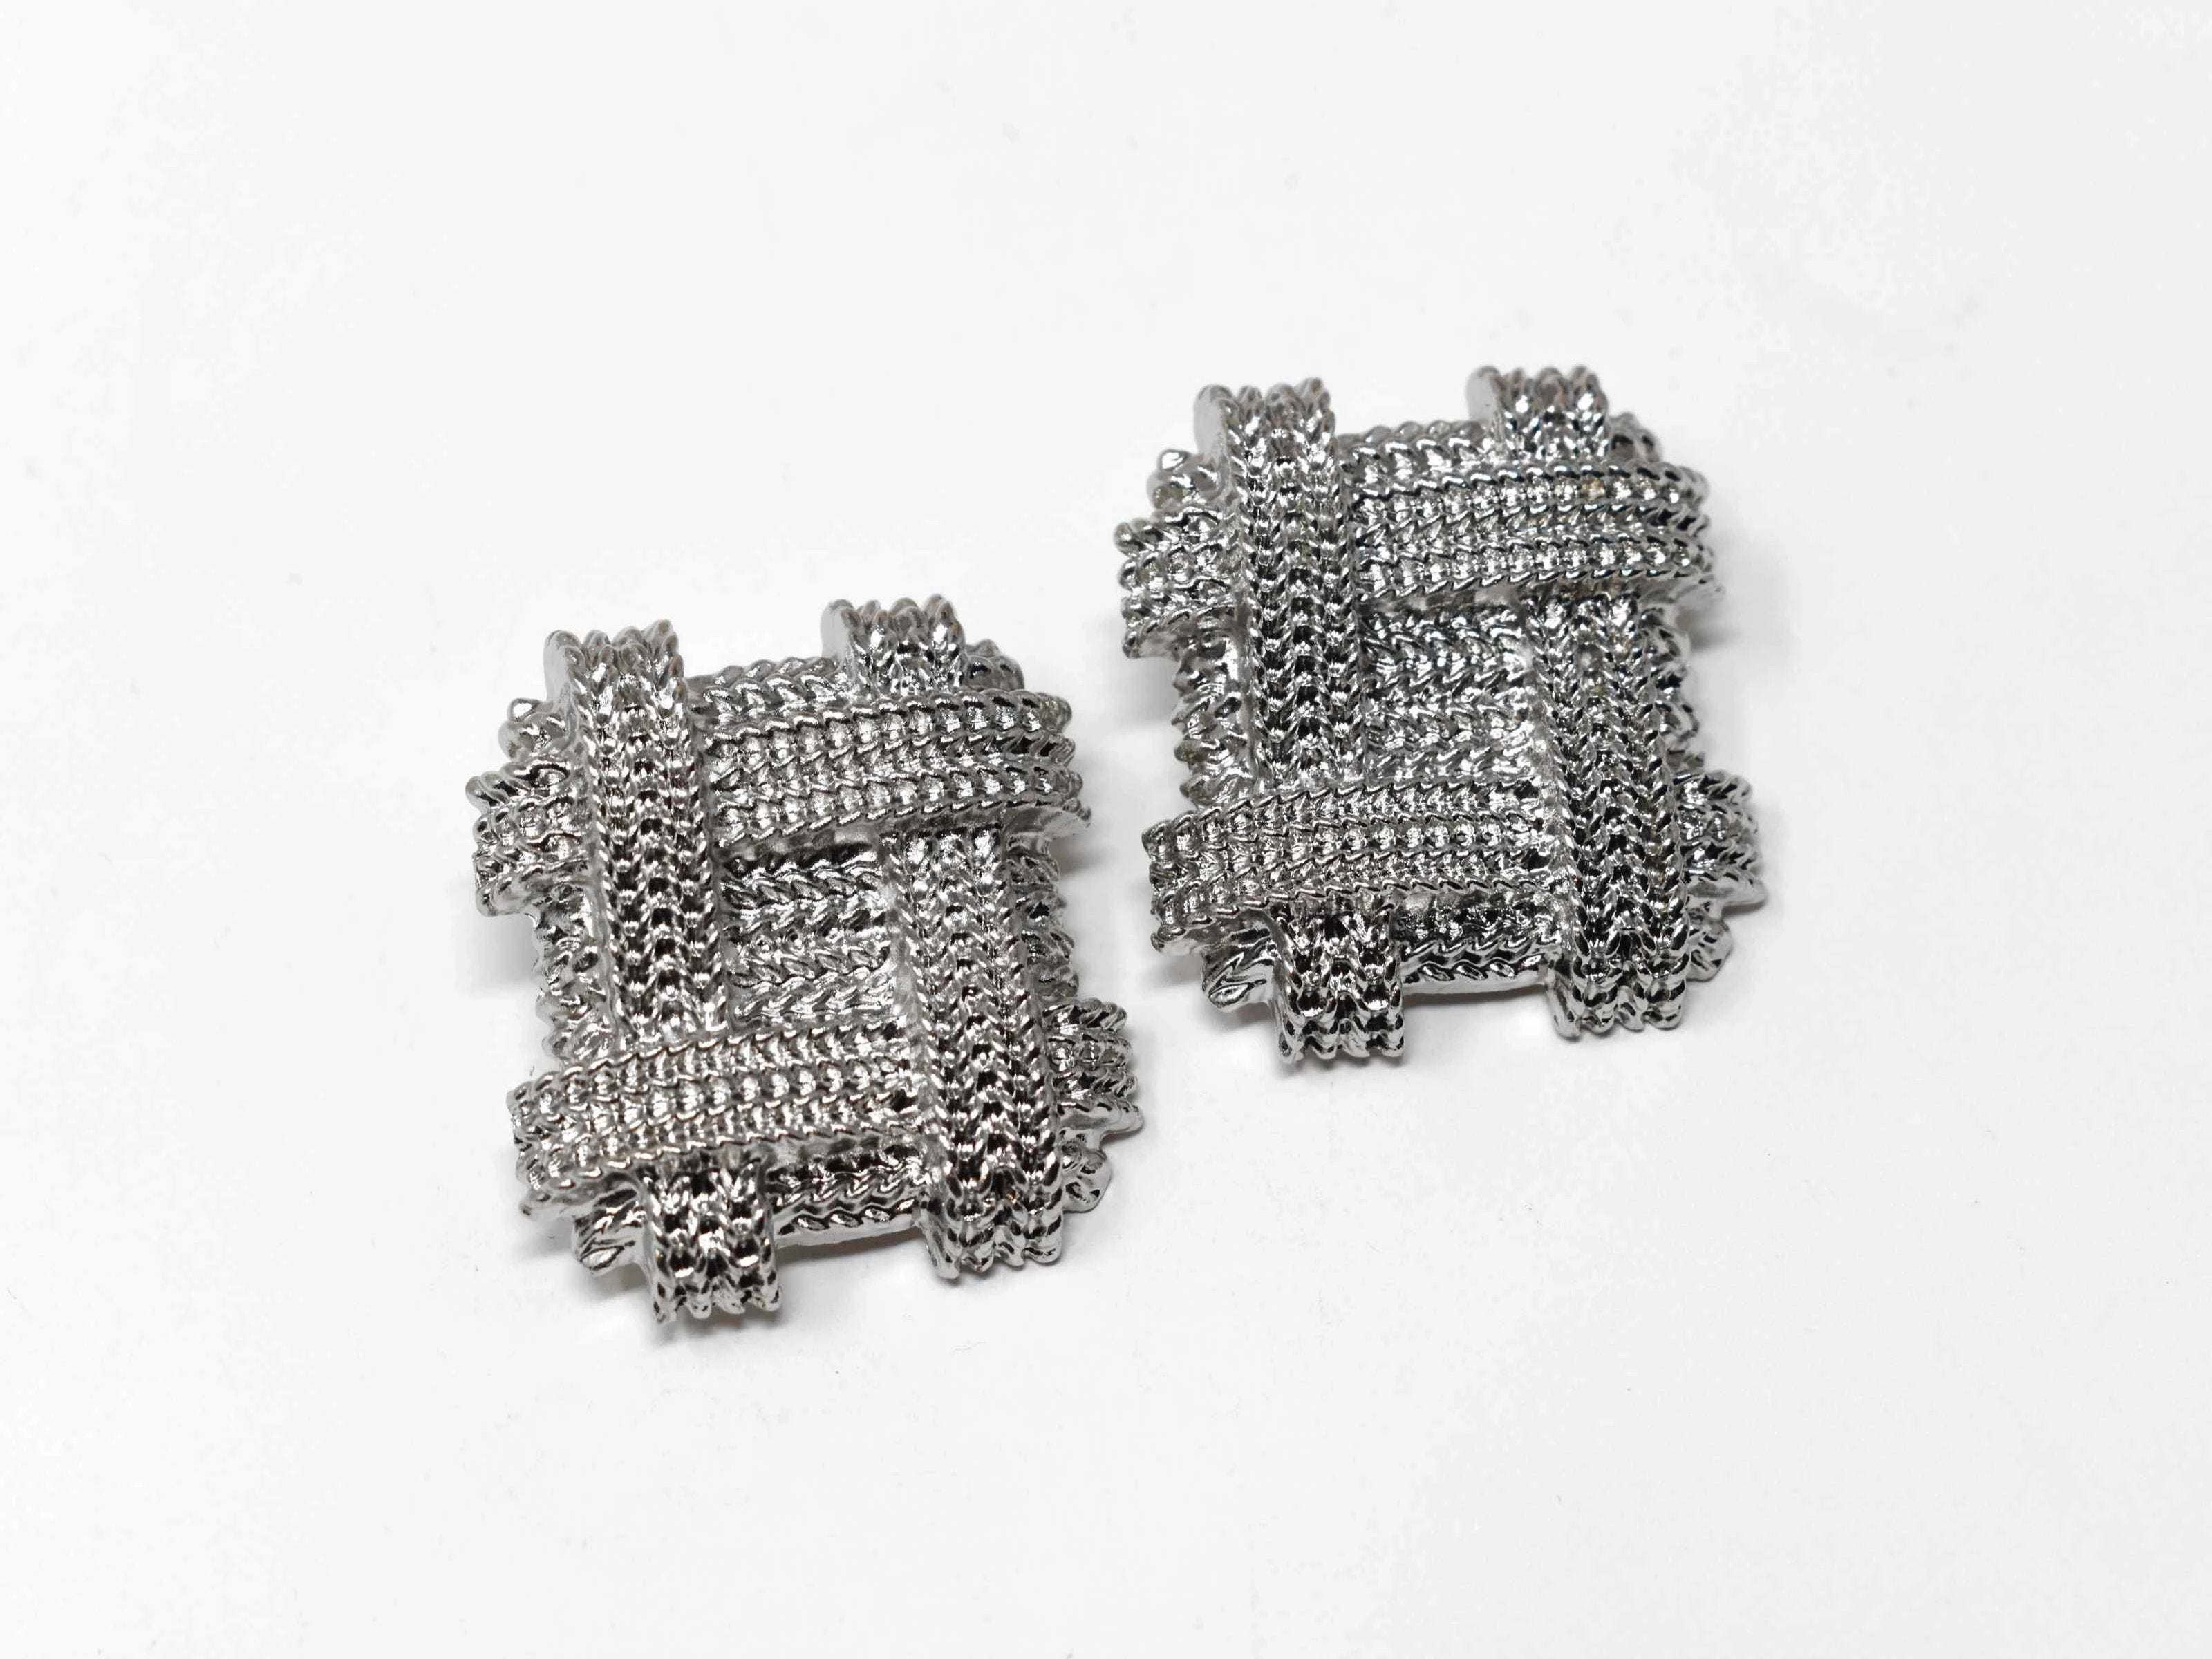 "Our Ane silver earrings Chic design will showcase your standout style with its unique chain design. These oversized square knobs 1 1/2"" in length with a clip back clasp. All hail the clip ons!"